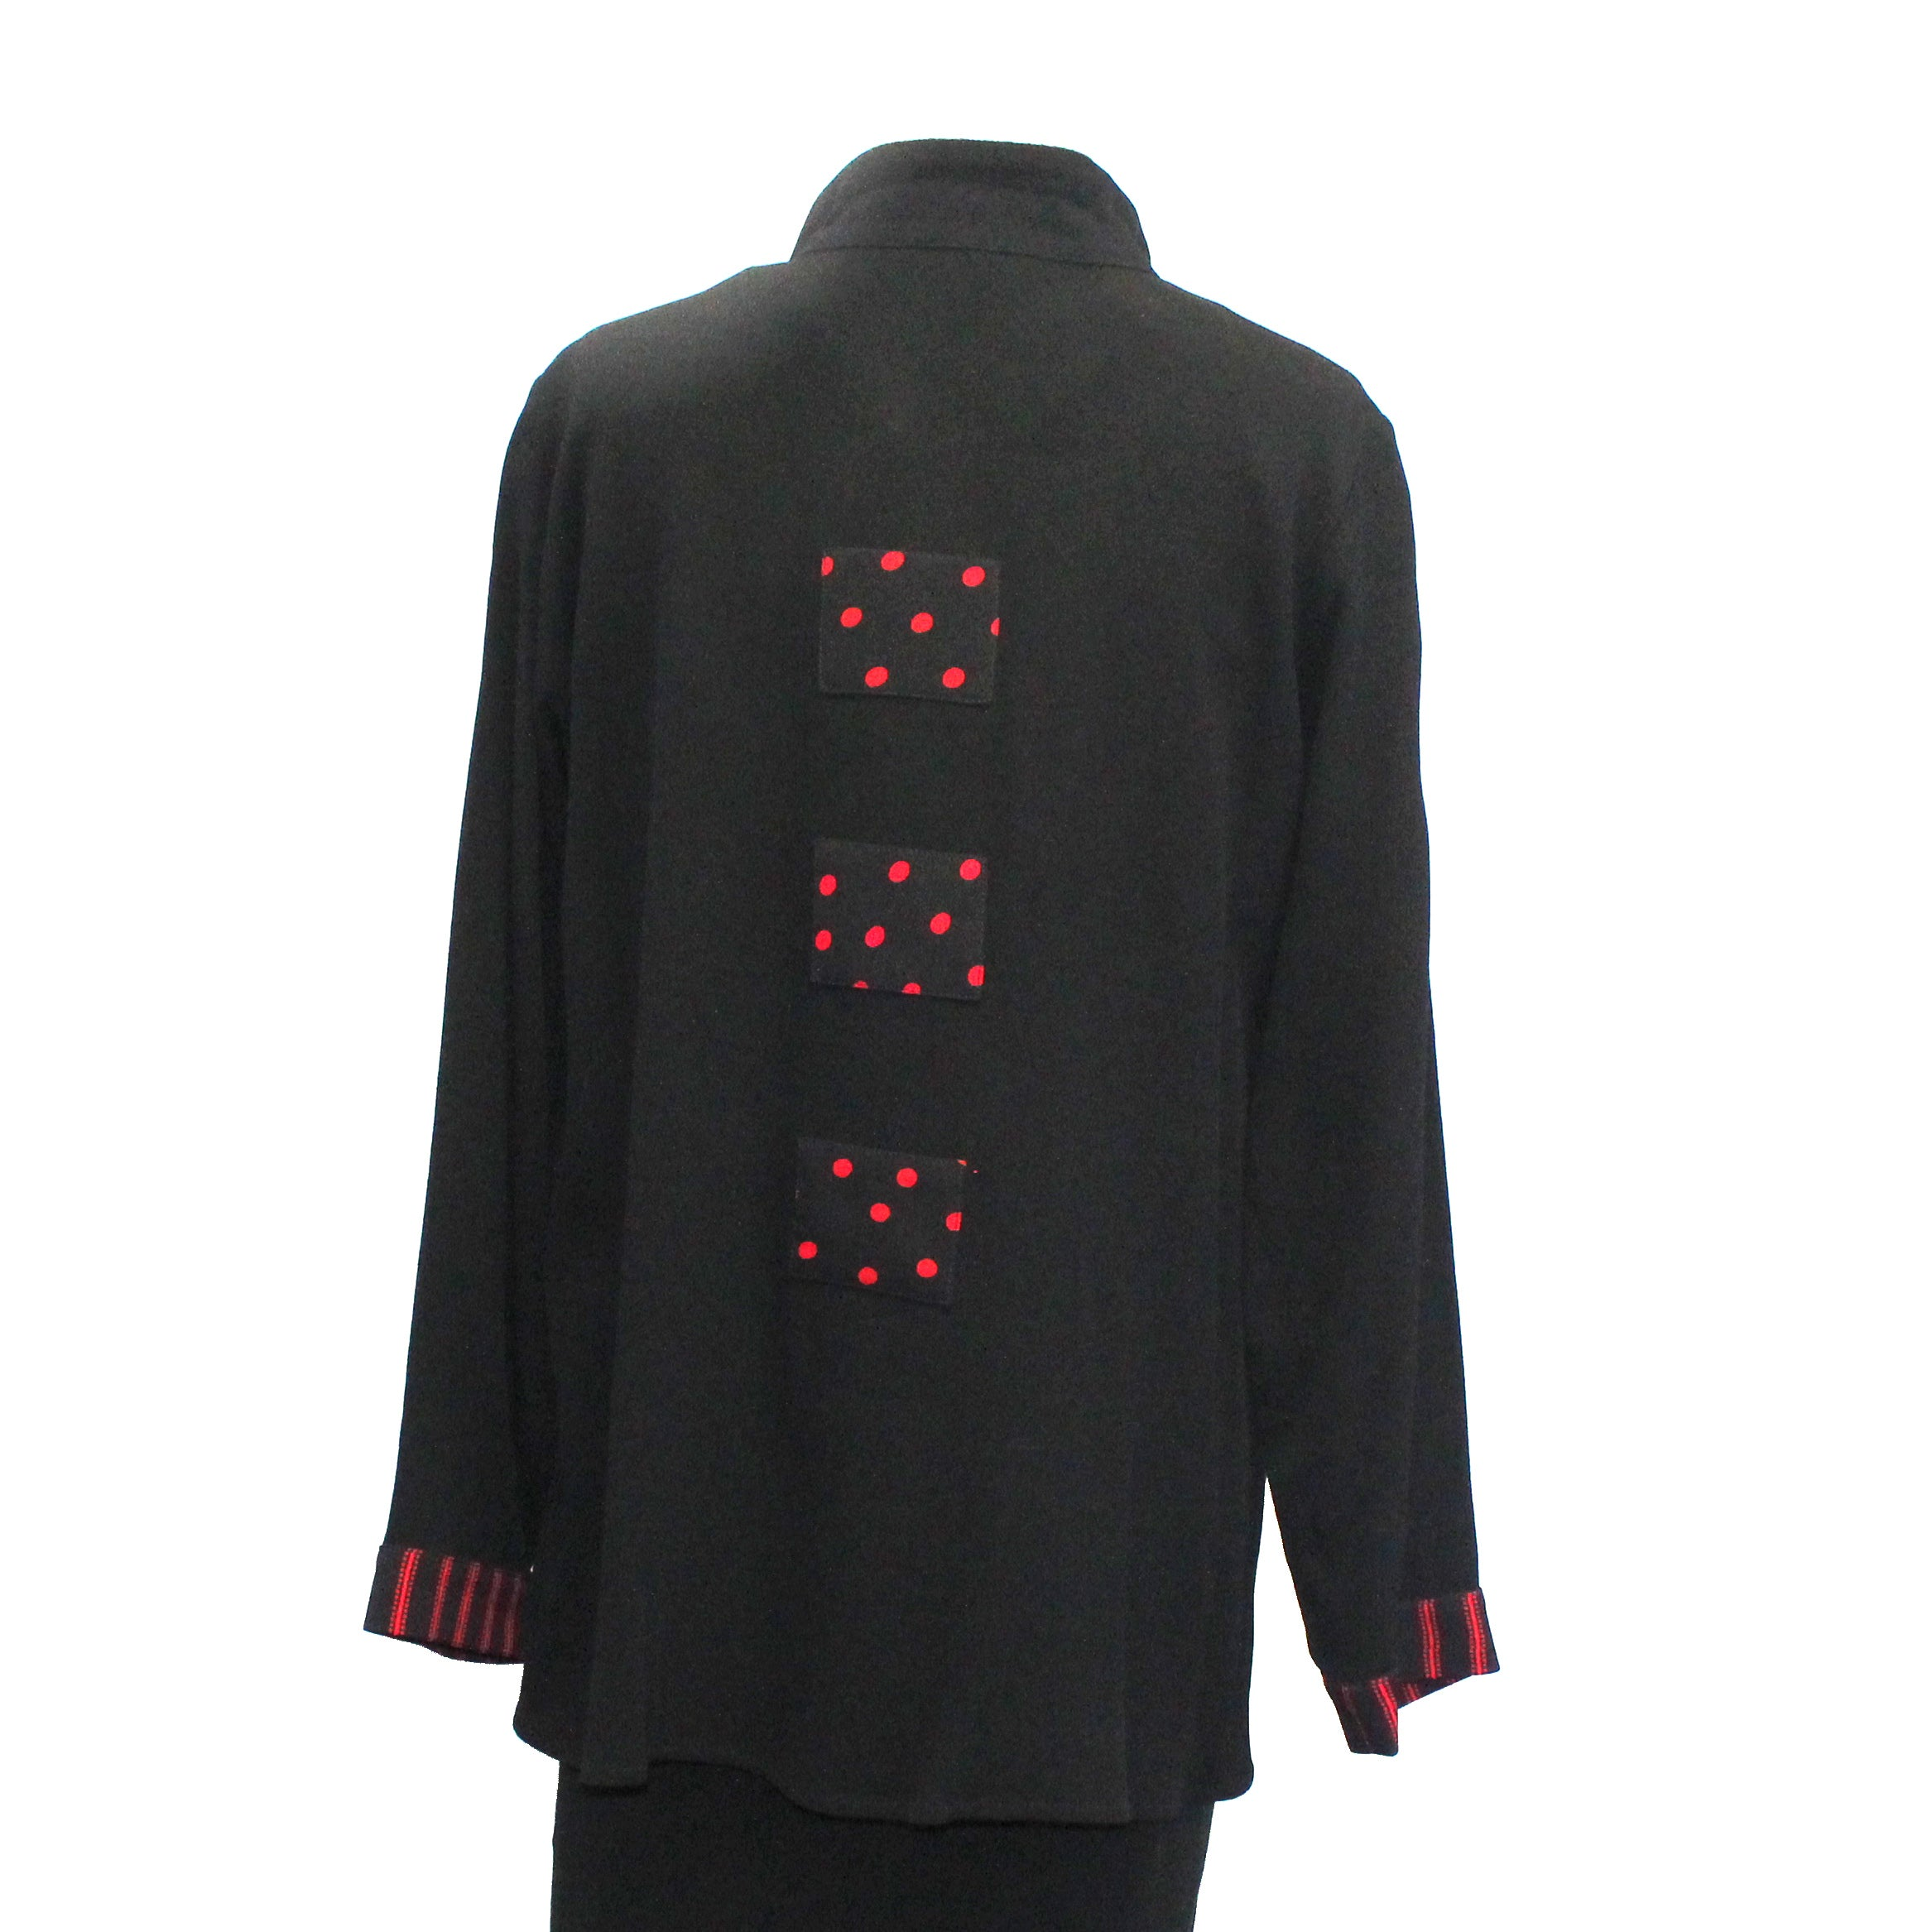 Marla Duran Shirt, Swing, Black/Red S & L